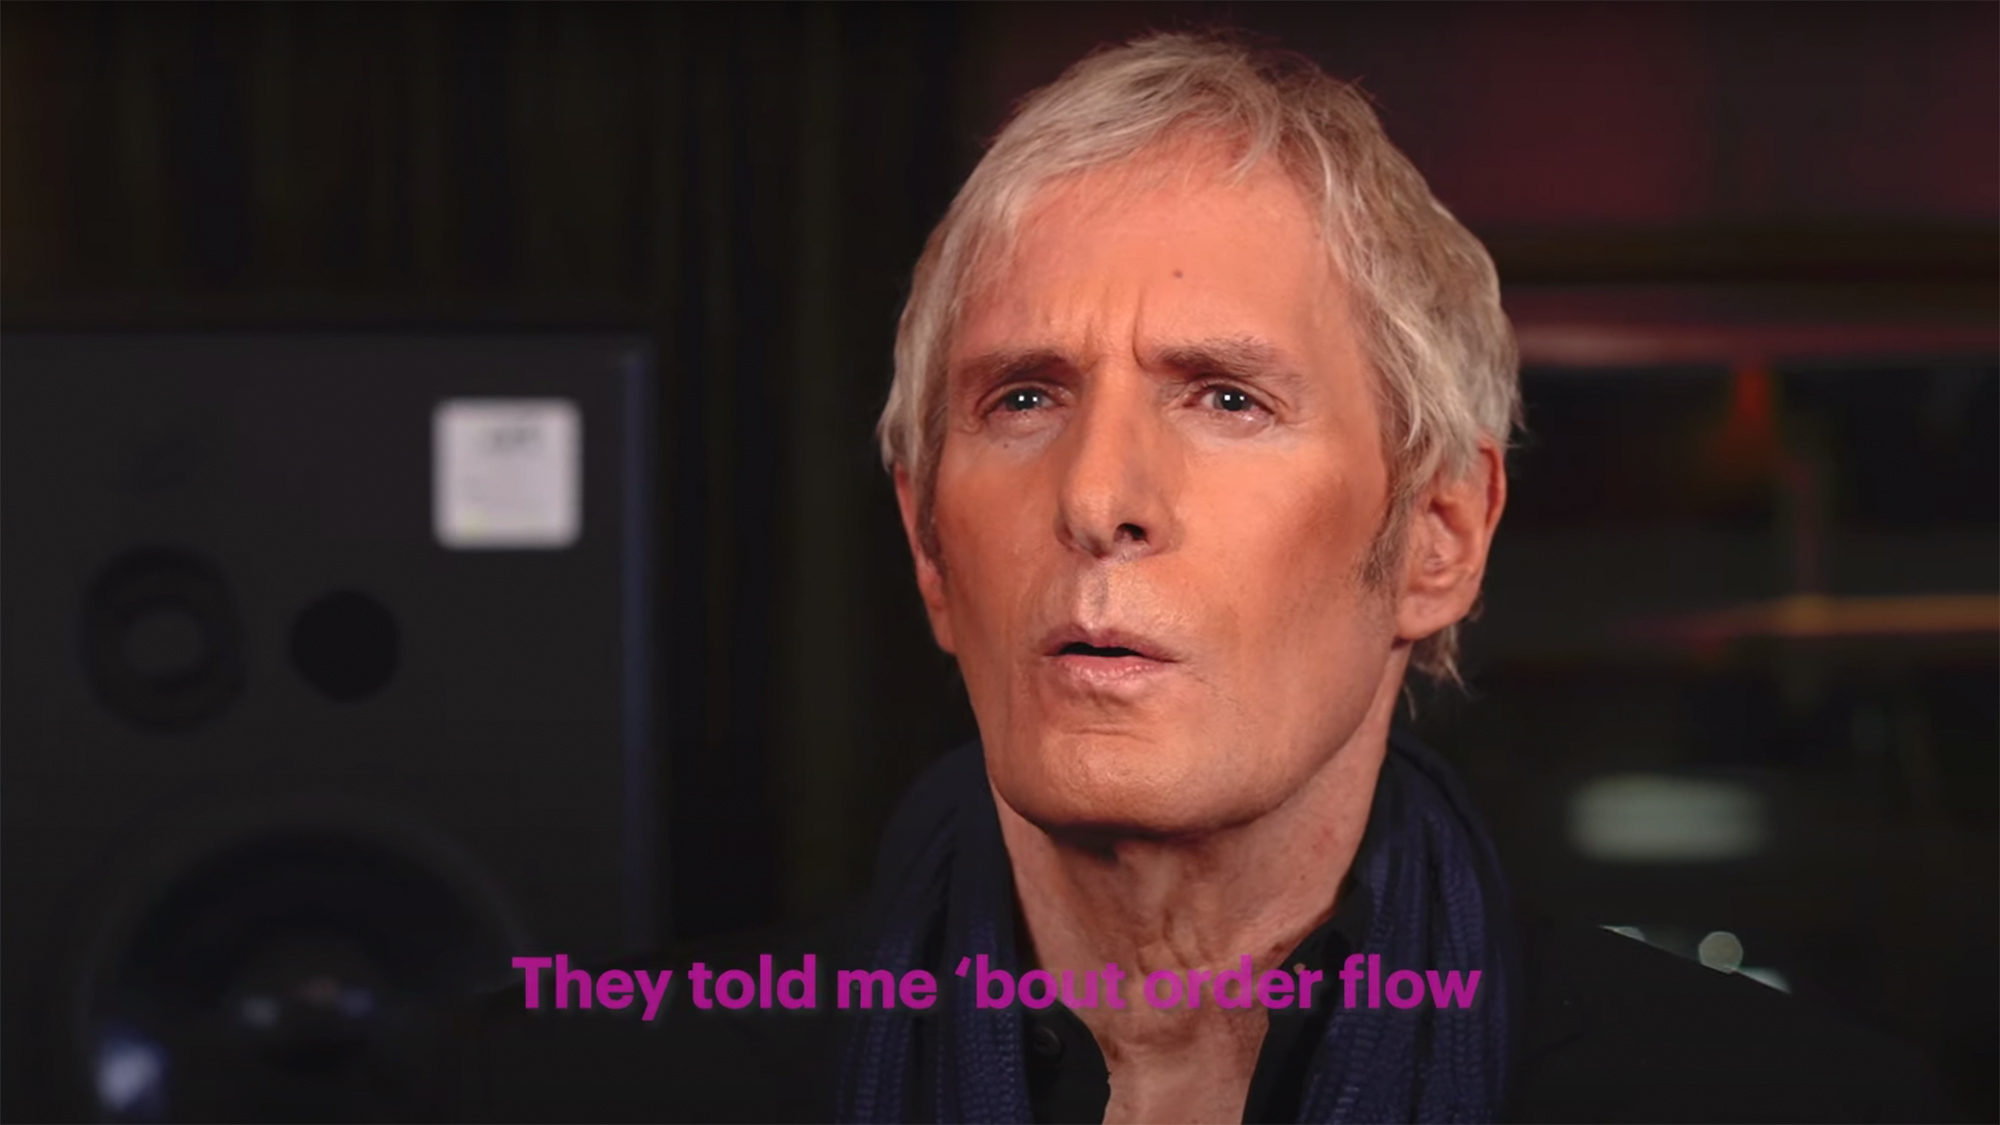 Michael Bolton wants you to break up with Robinhood. Yes, that Michael Bolton